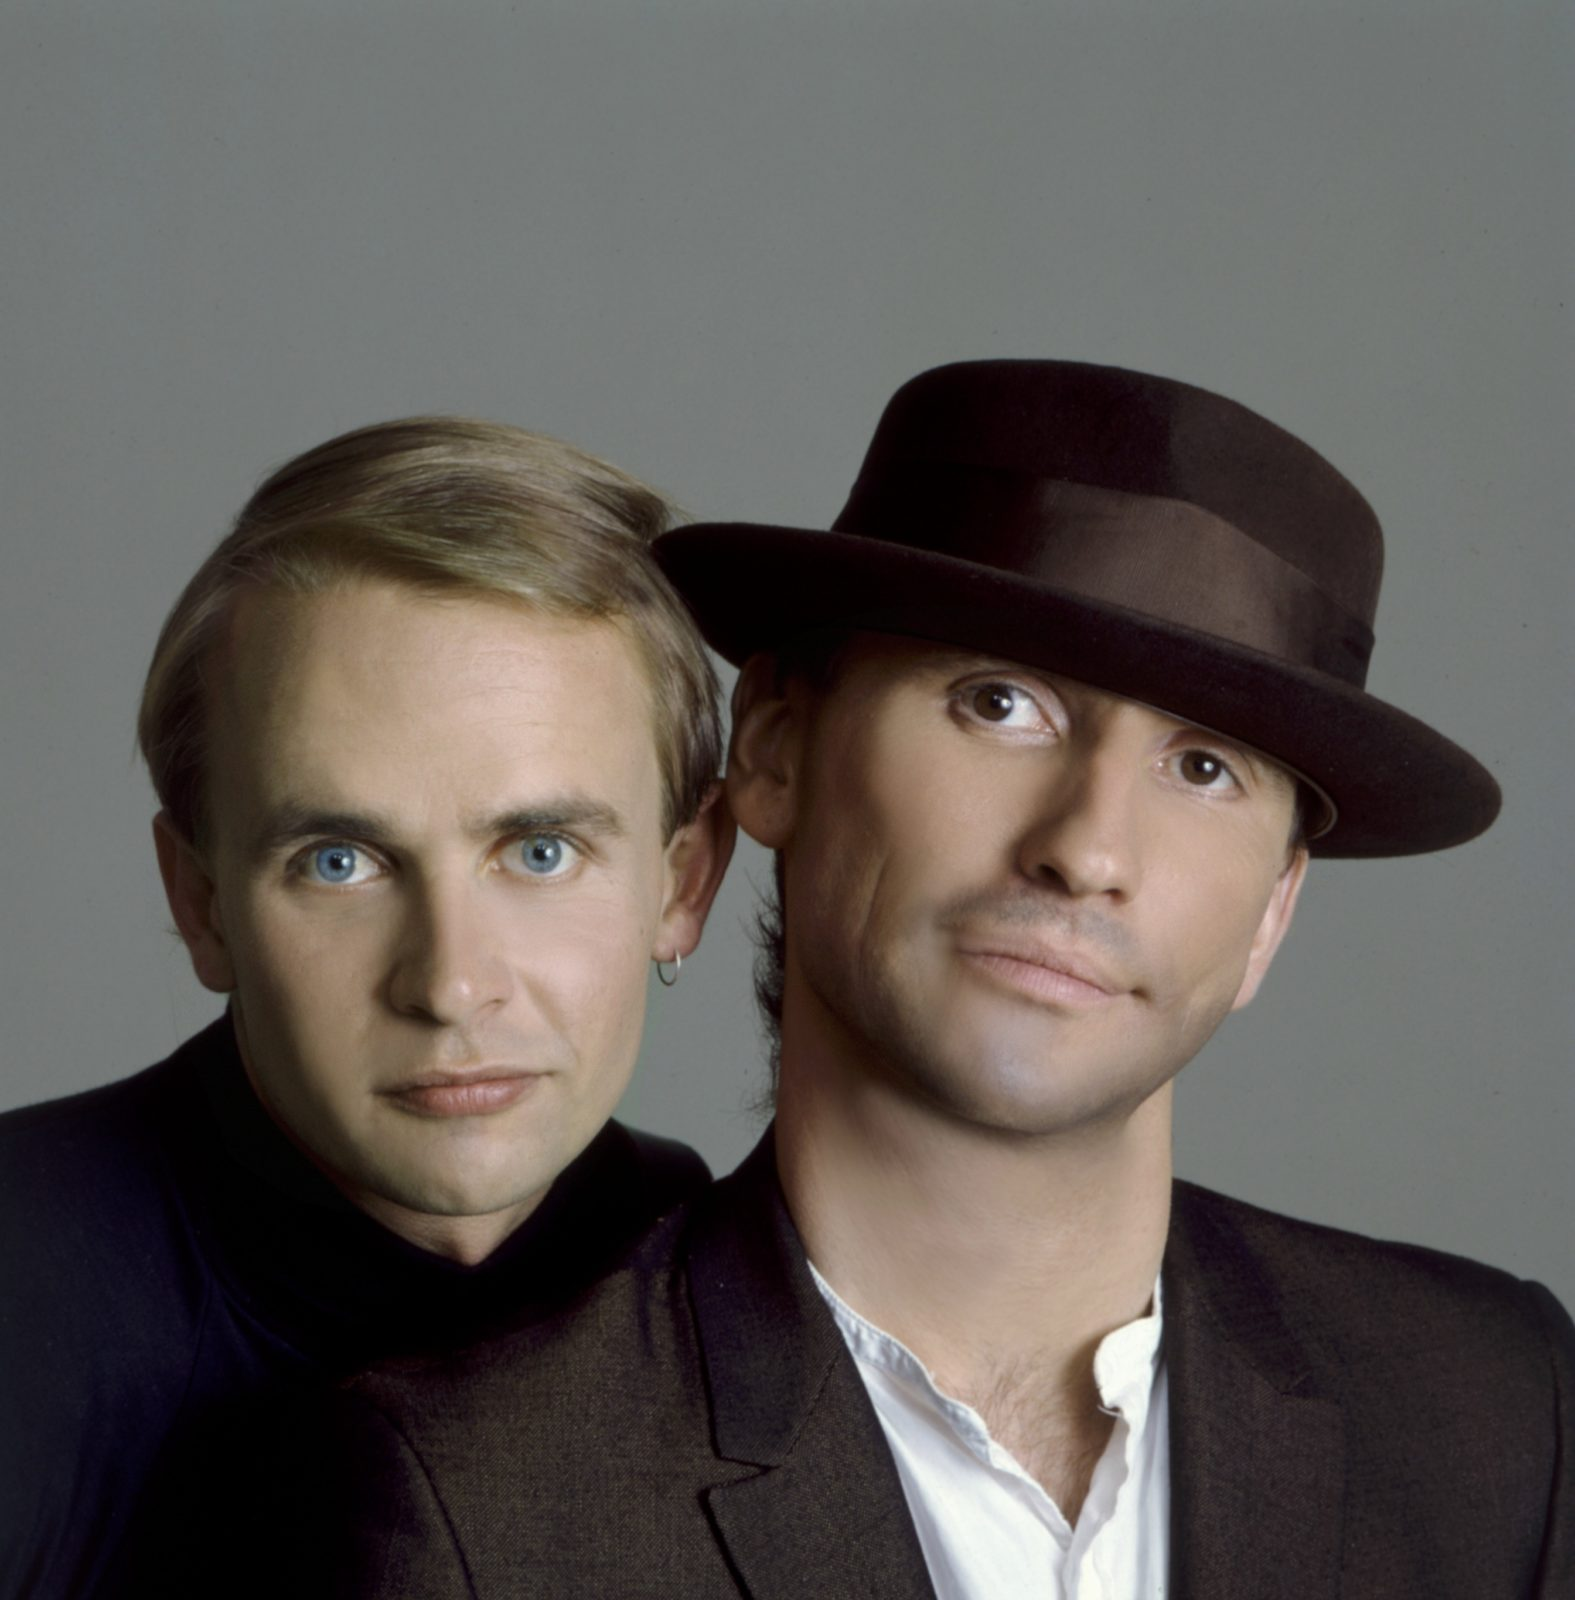 Greg Ham and Colin Hay were close friends. Source: Getty.